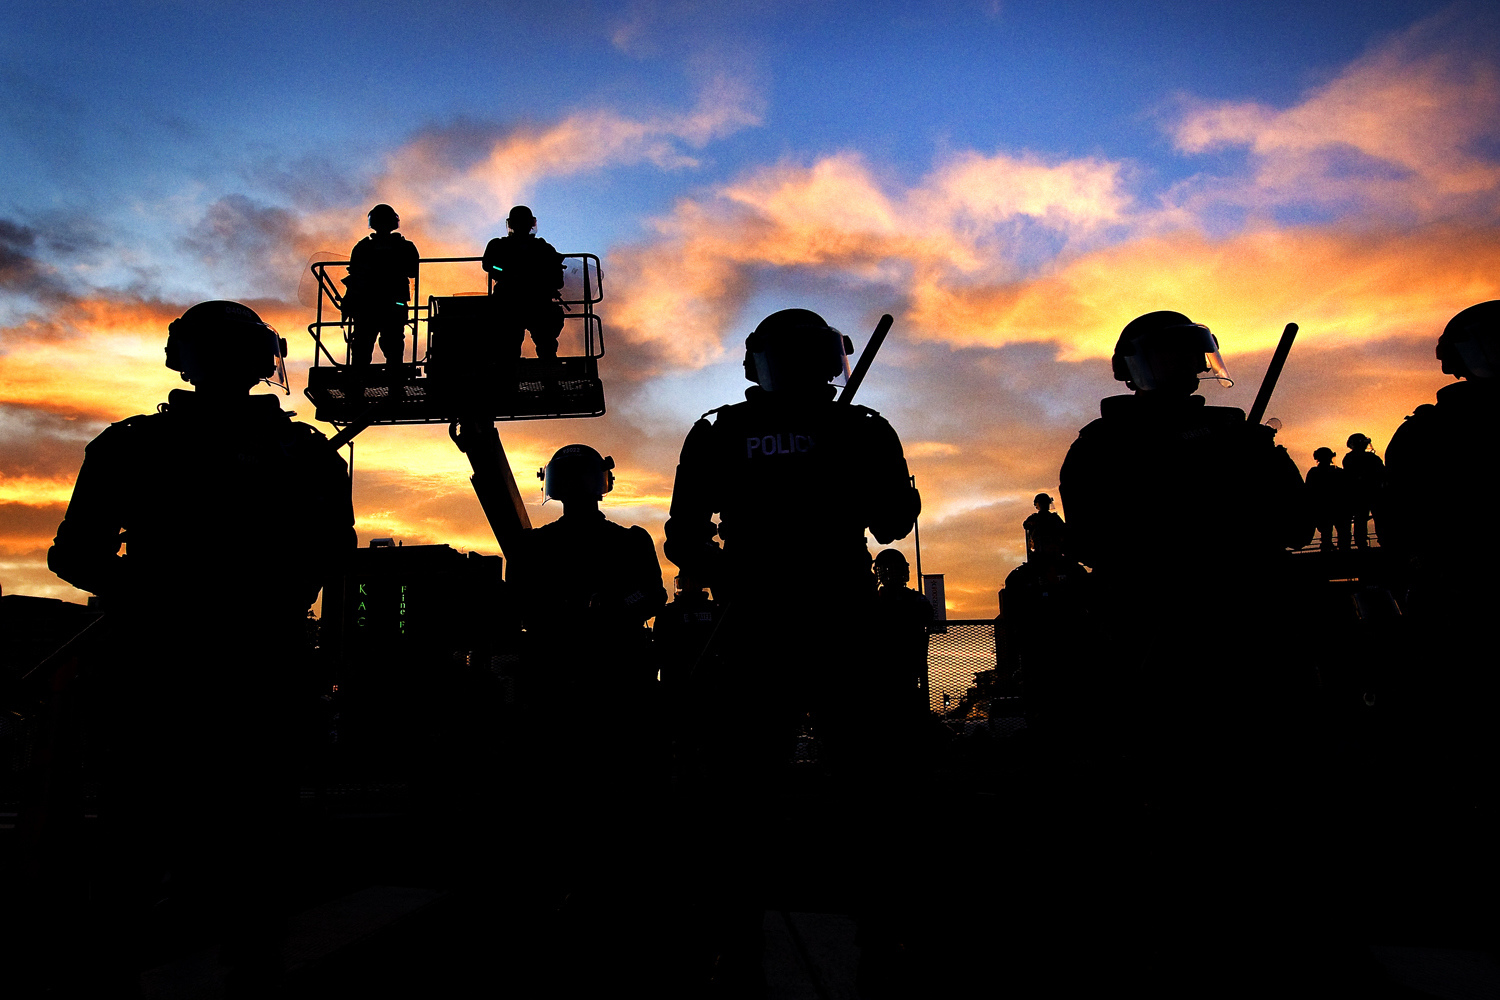 swat team against sunset editorial photography central illinois